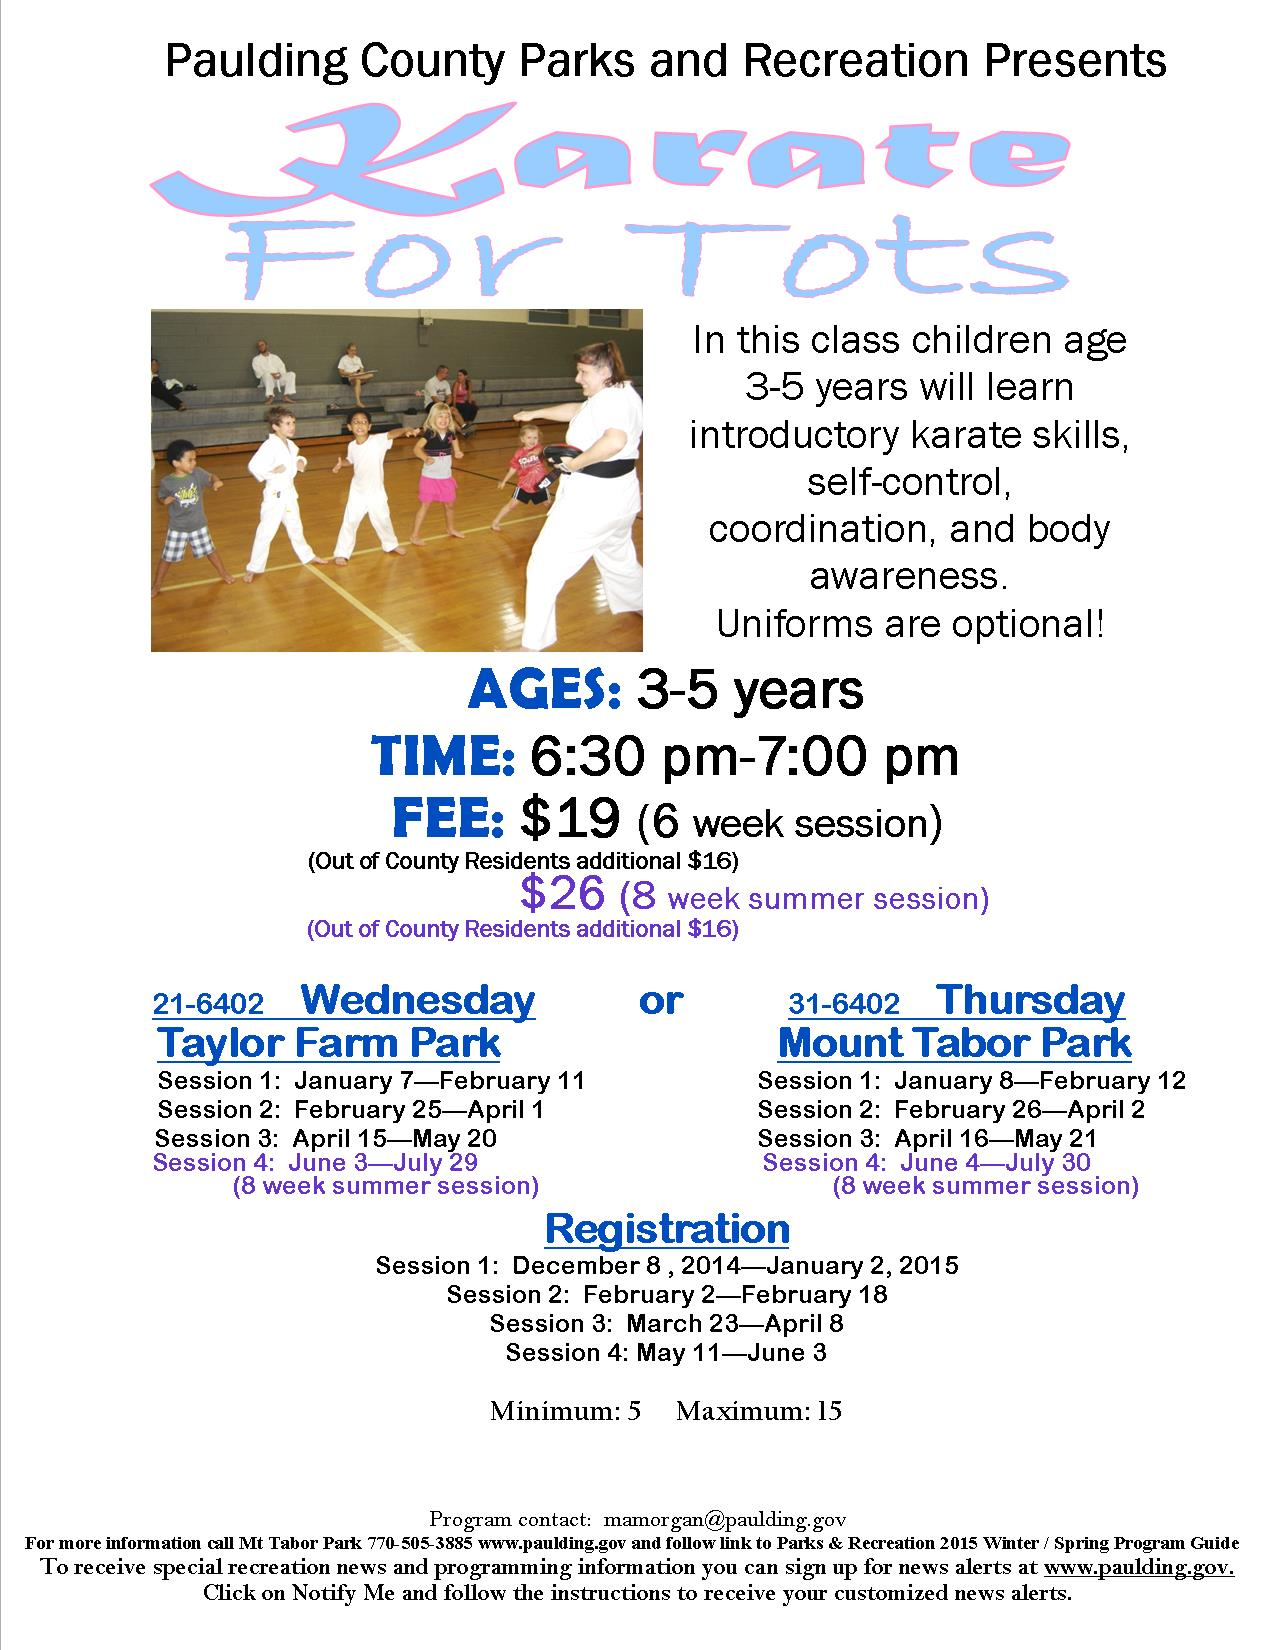 Karate For Tots 2015 Paulding County Uncensored